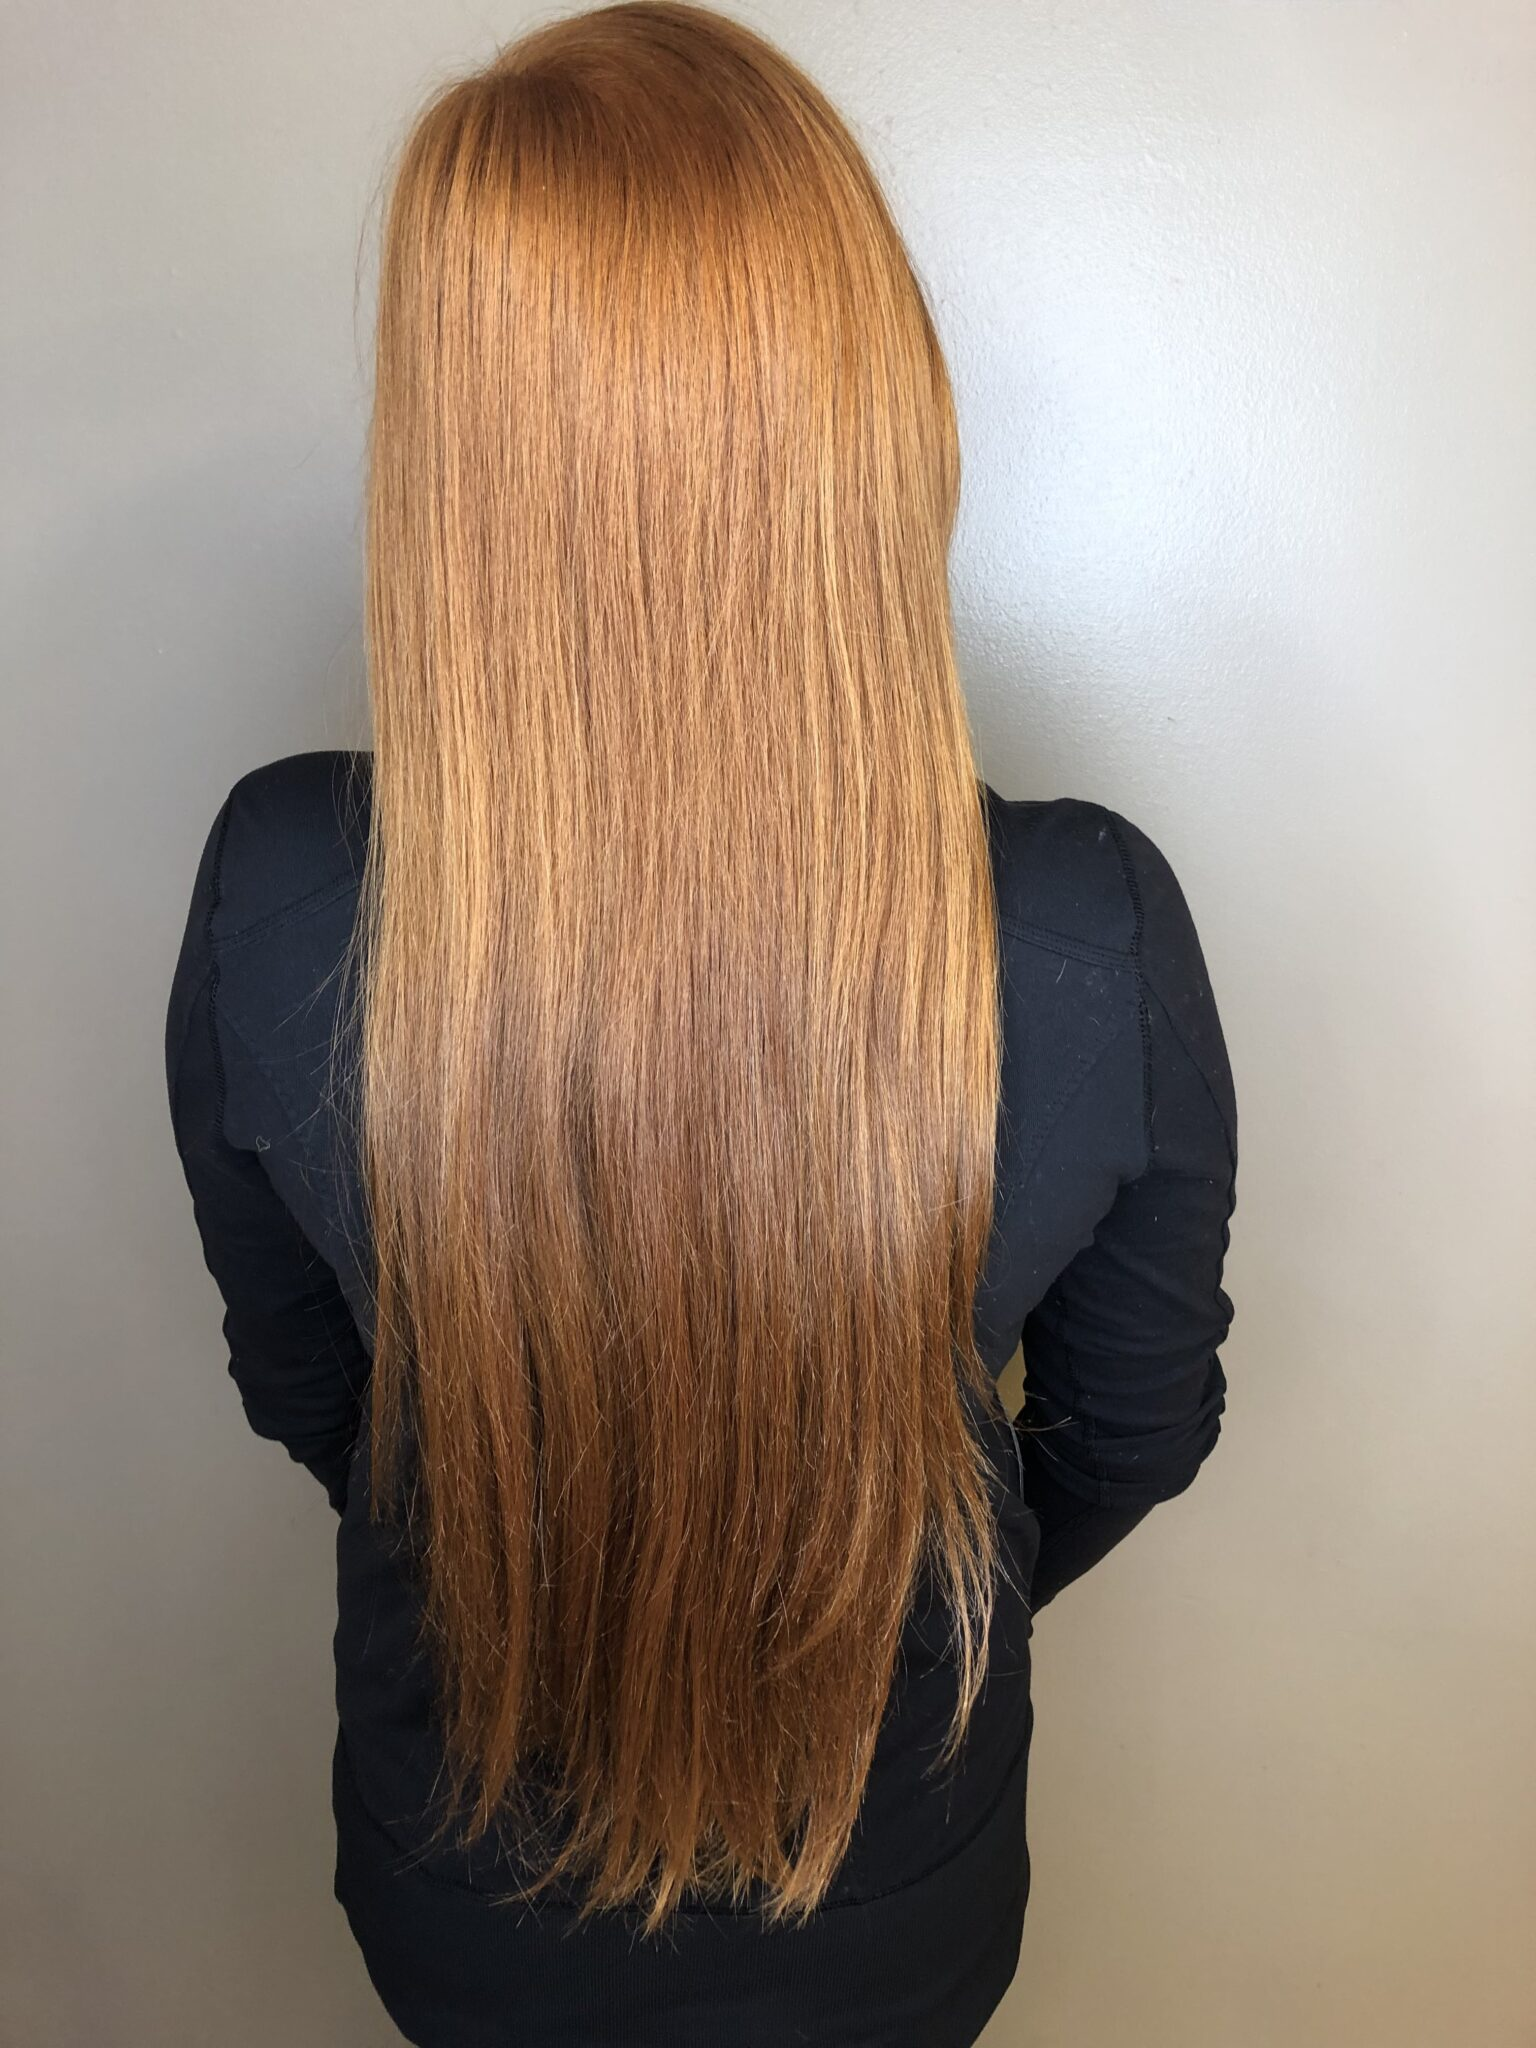 Natural Virgin Red Hair 15.5 inches, about 1.25 inches thick